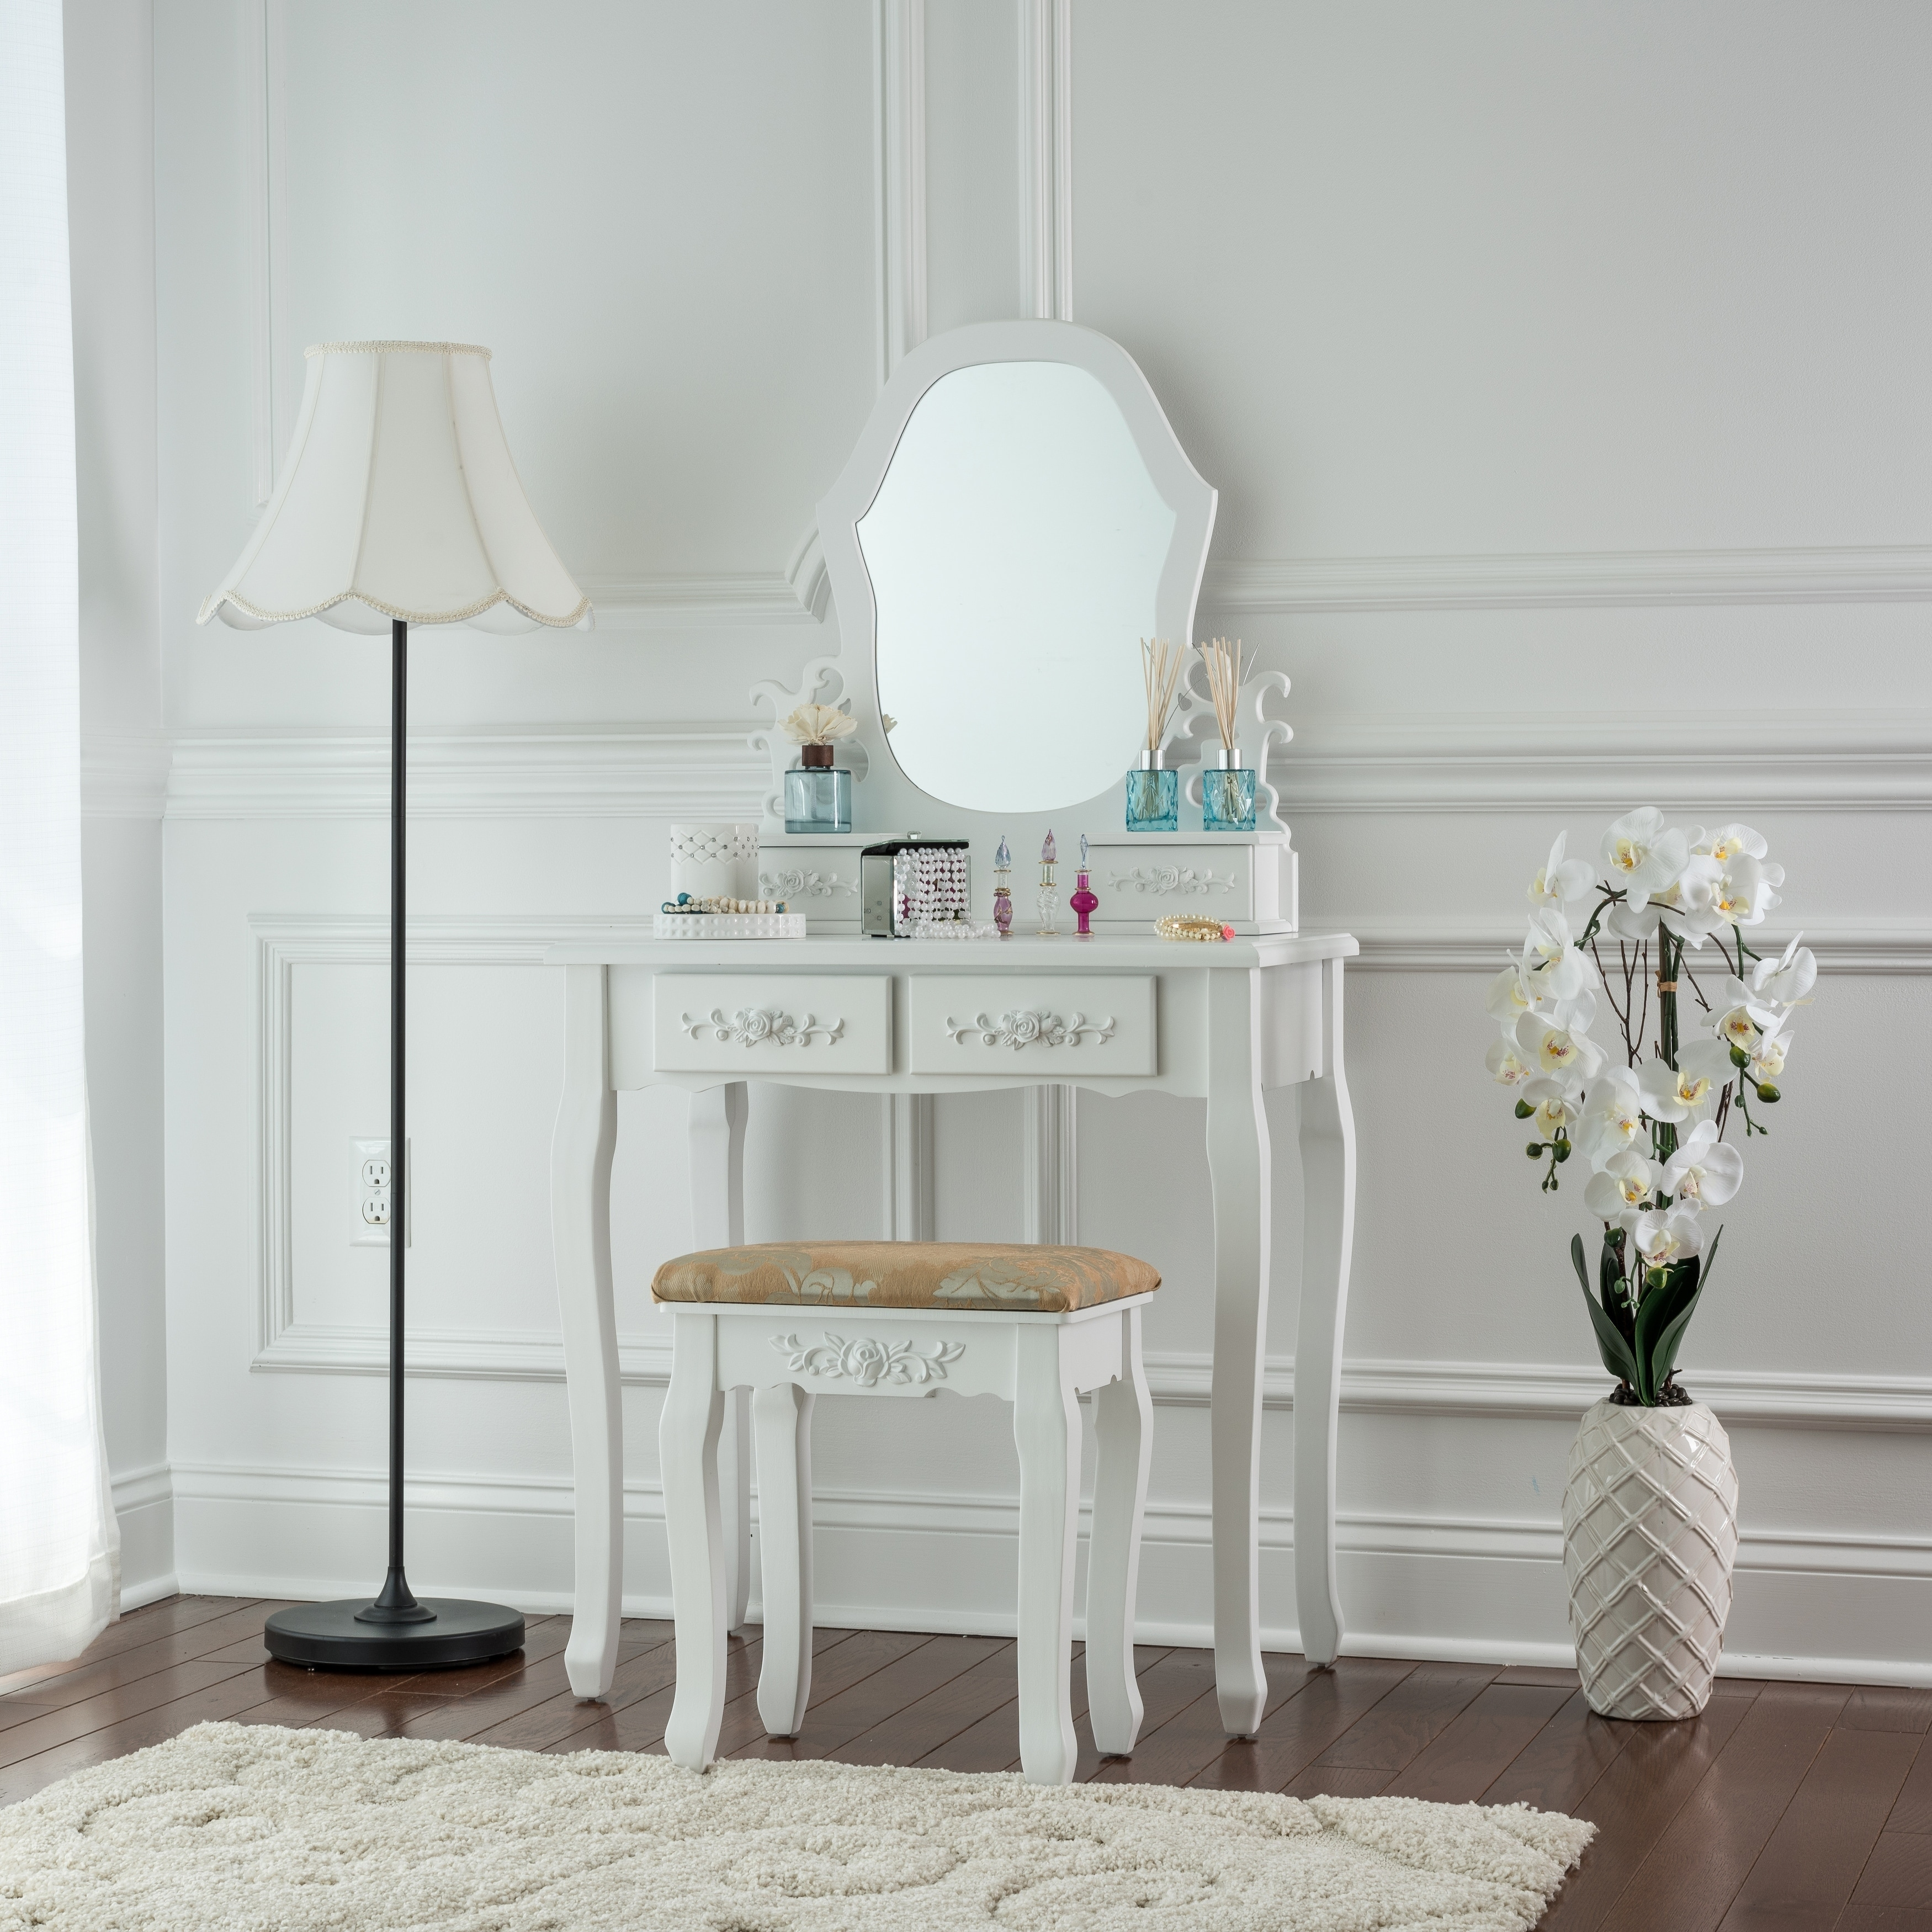 mirror furniture lighted show perfect light using small pin bench fabric makeup in way beauty set and table vanity maximum with by black